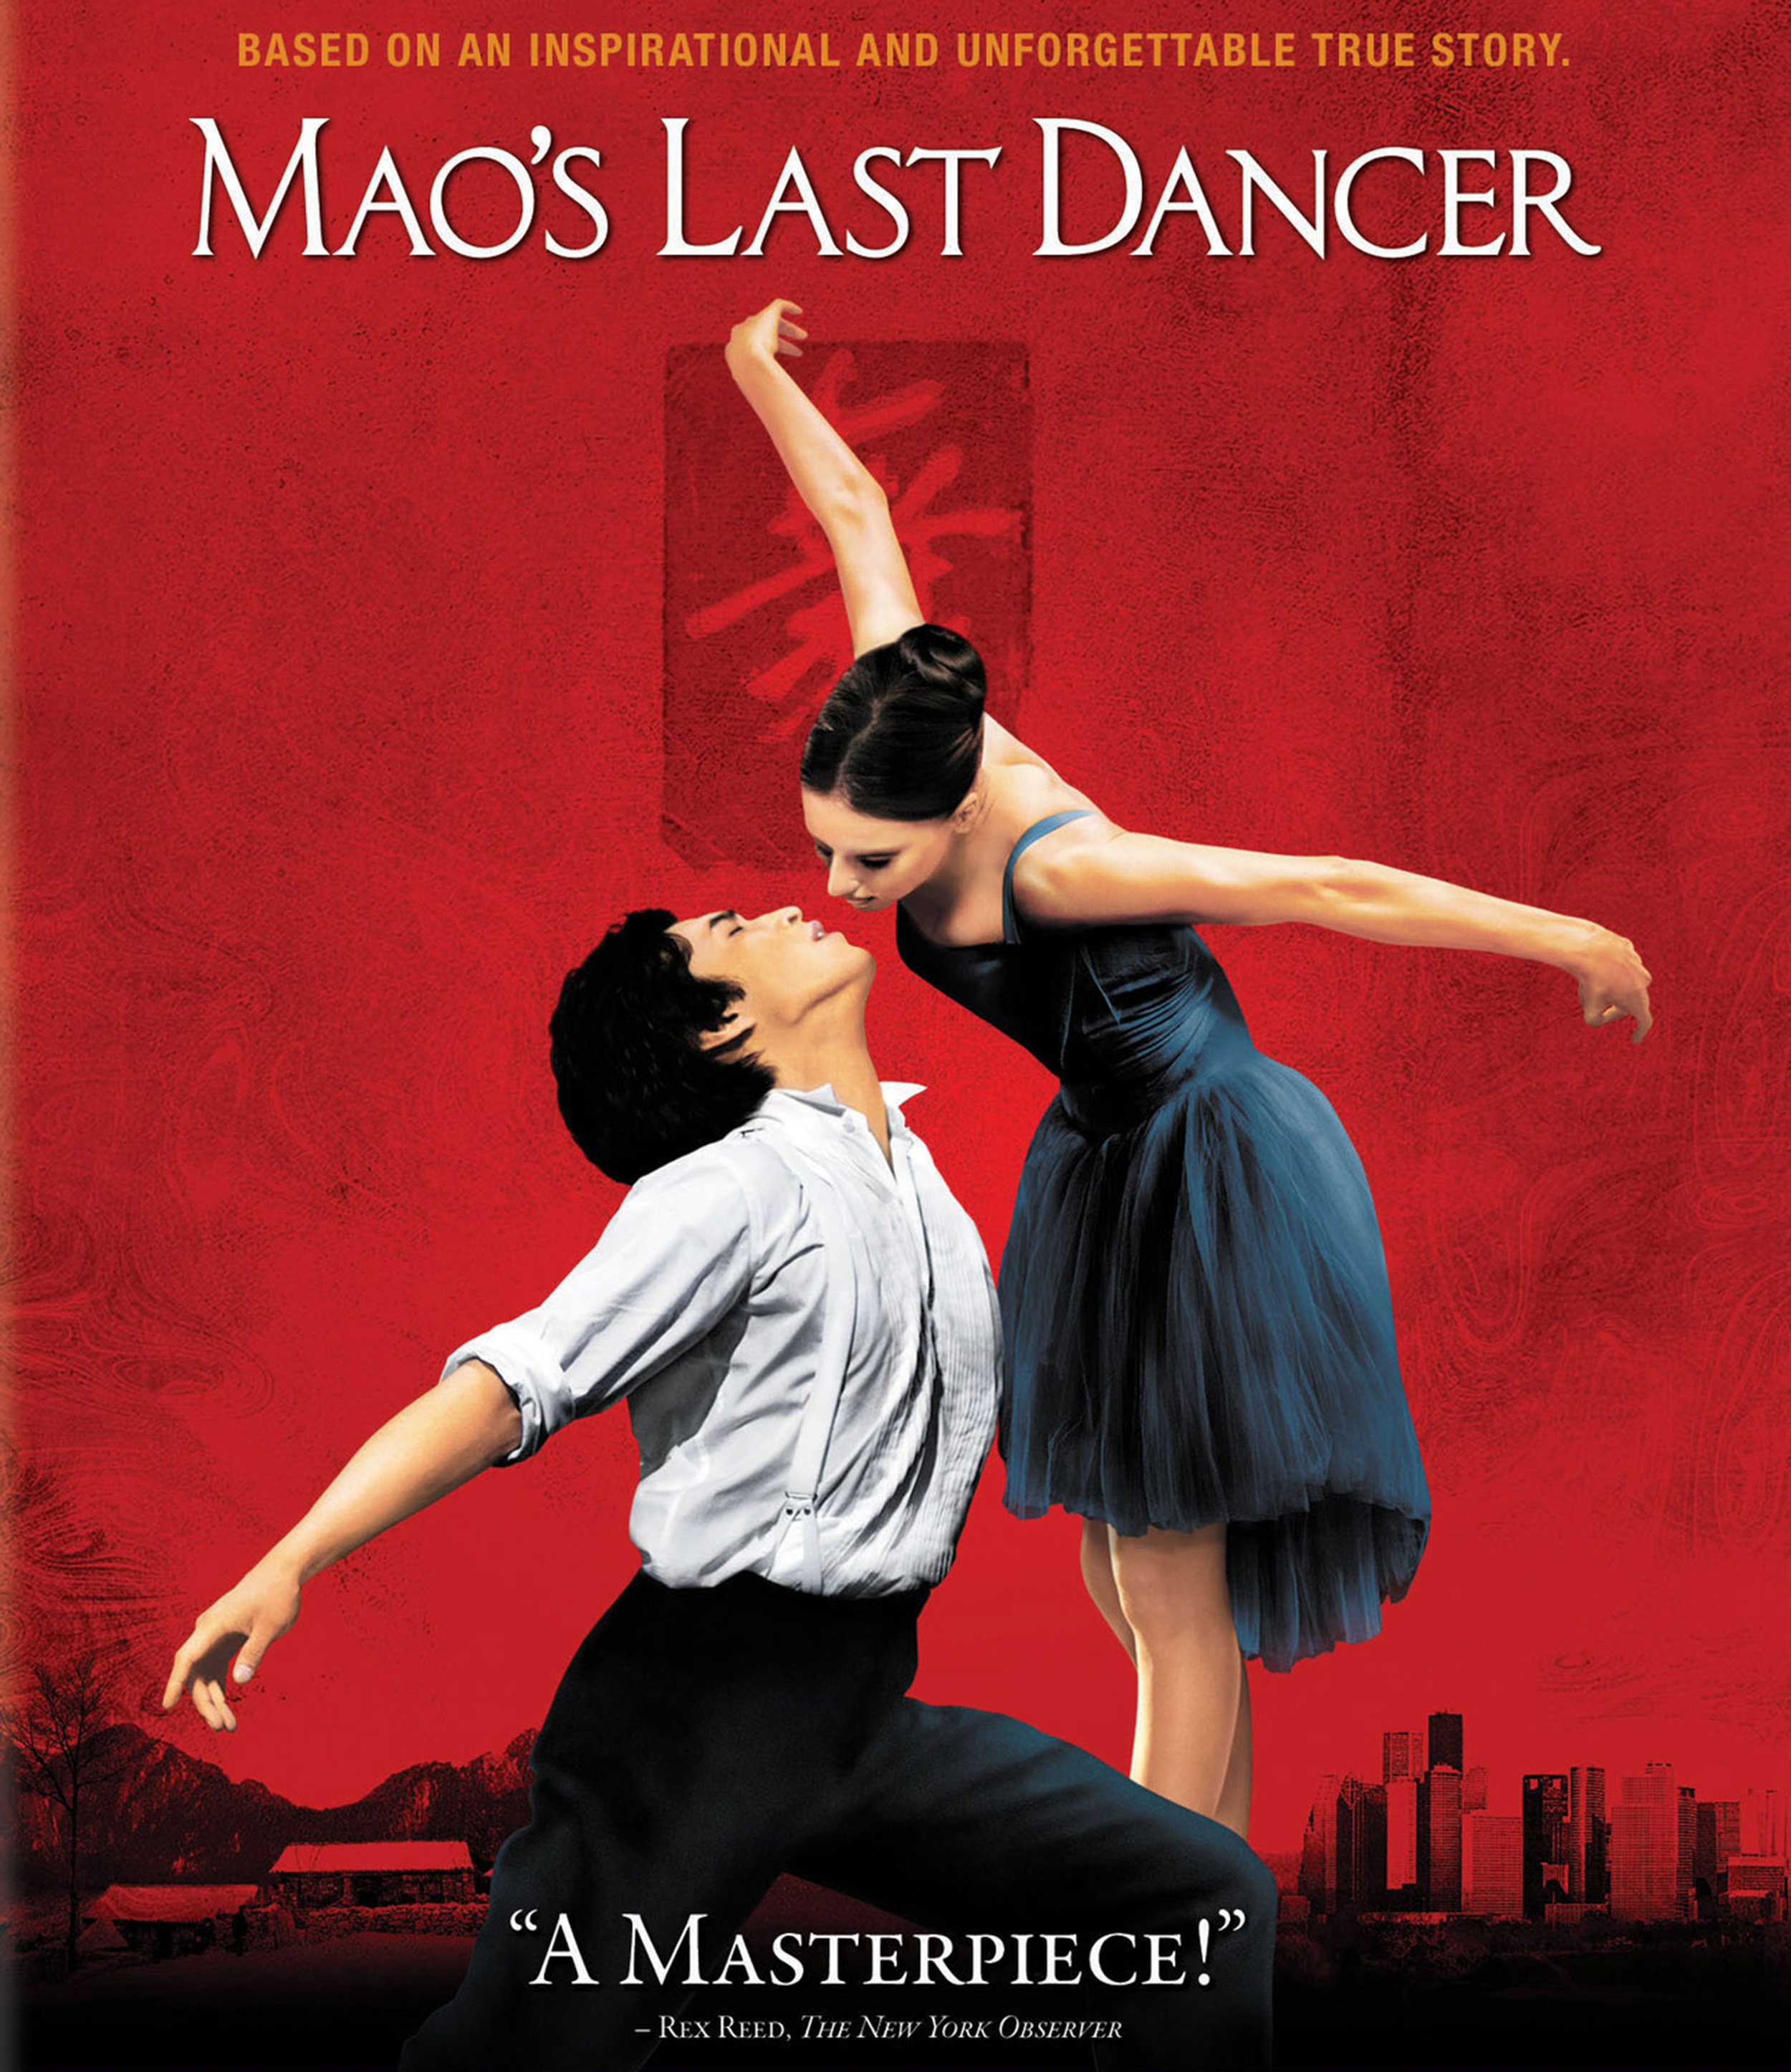 Mao's Last Dancer  is based on the true story of Li Cunxin, a Chinese boy who eventually becomes a principal dancer of an American ballet company.